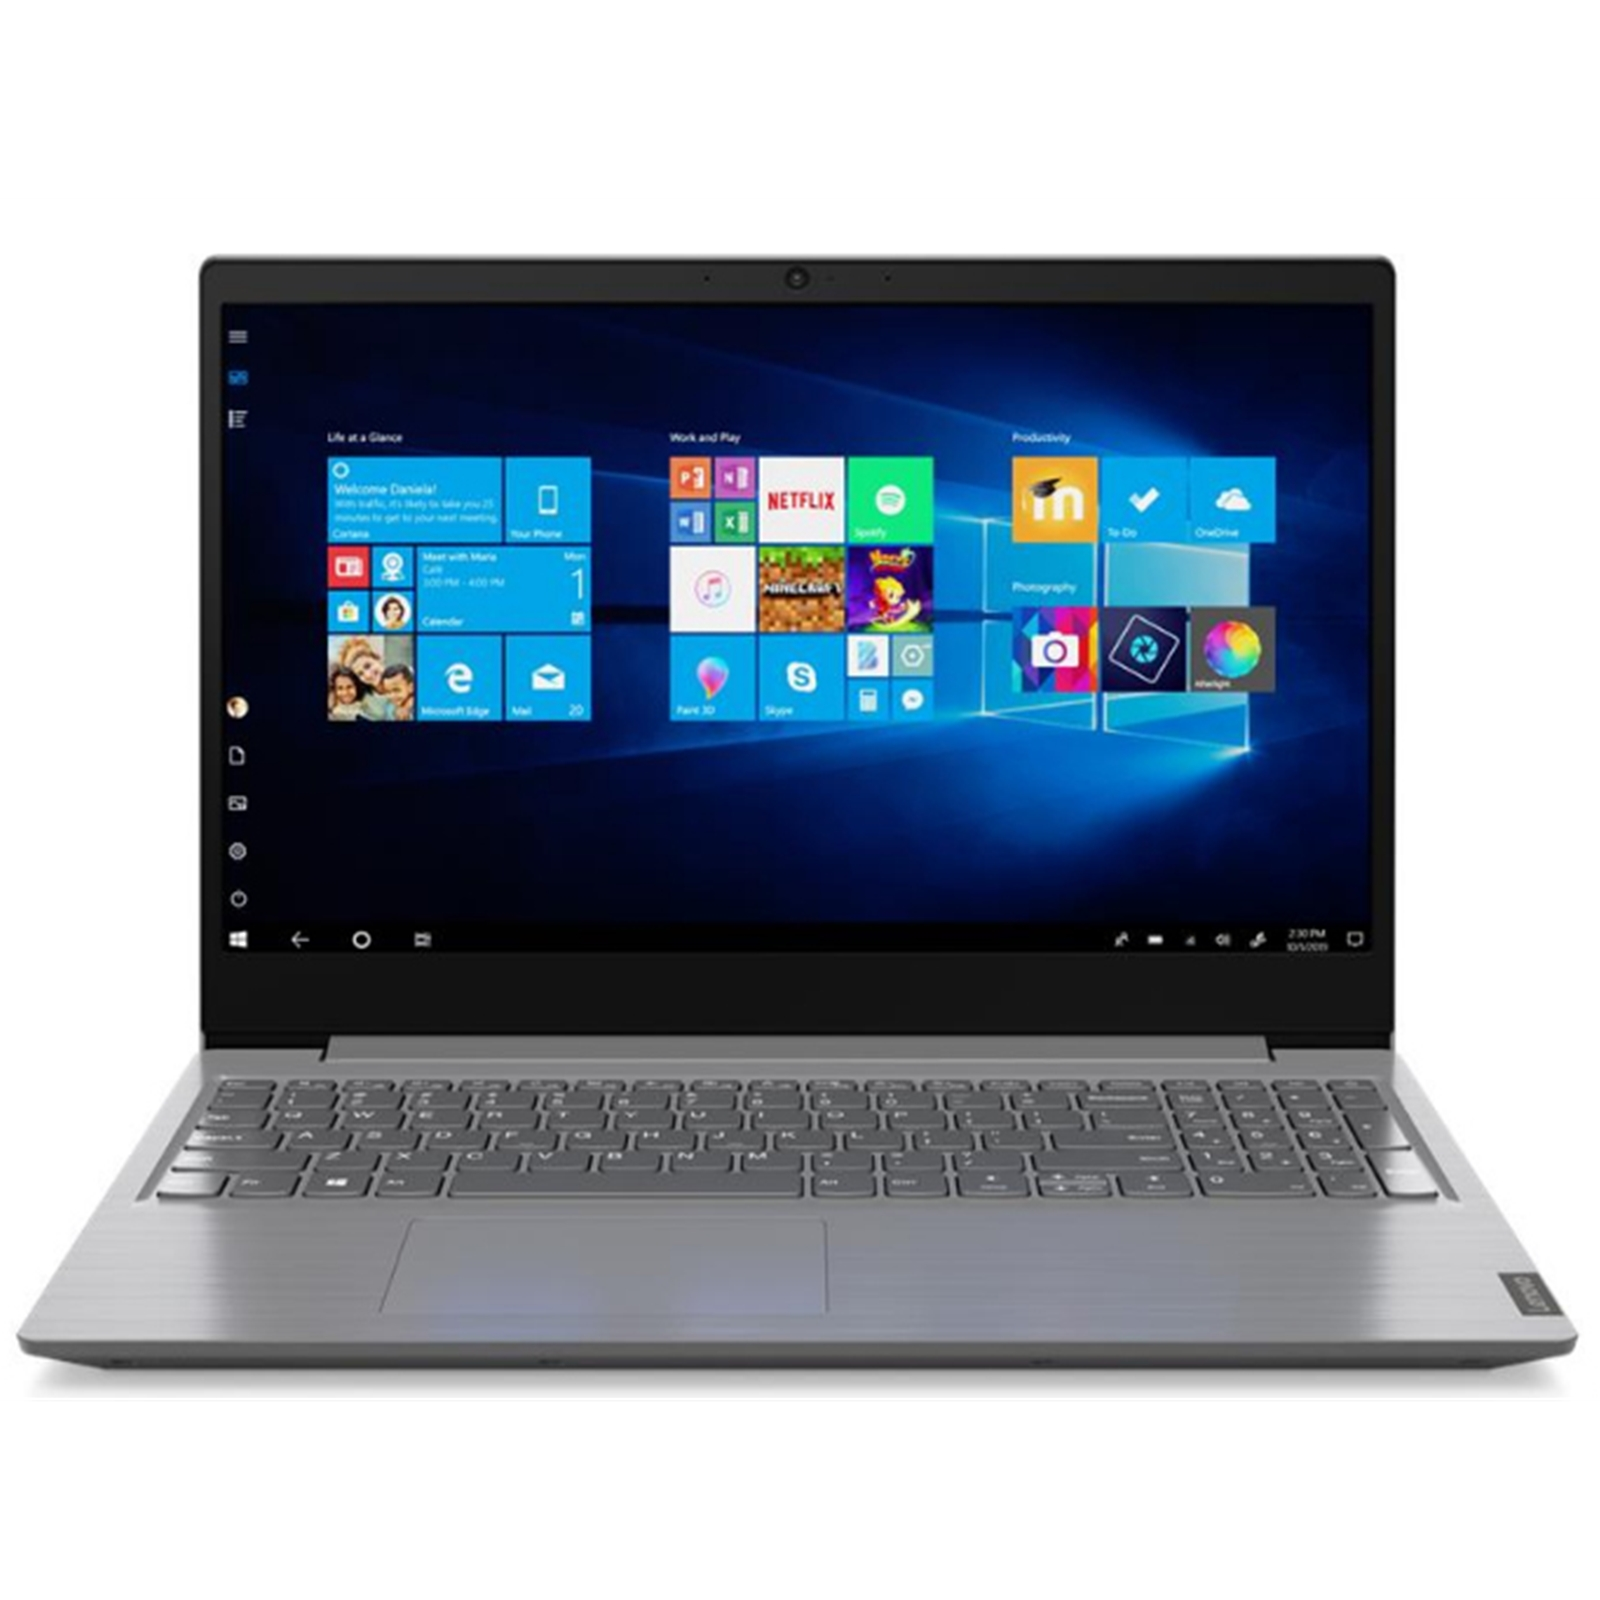 Lenovo V15 82C500A3UK Core i5-1035G1 8GB RAM 256GB SSD 15.6 inch Full HD Windows 10 Pro Laptop Iron Grey